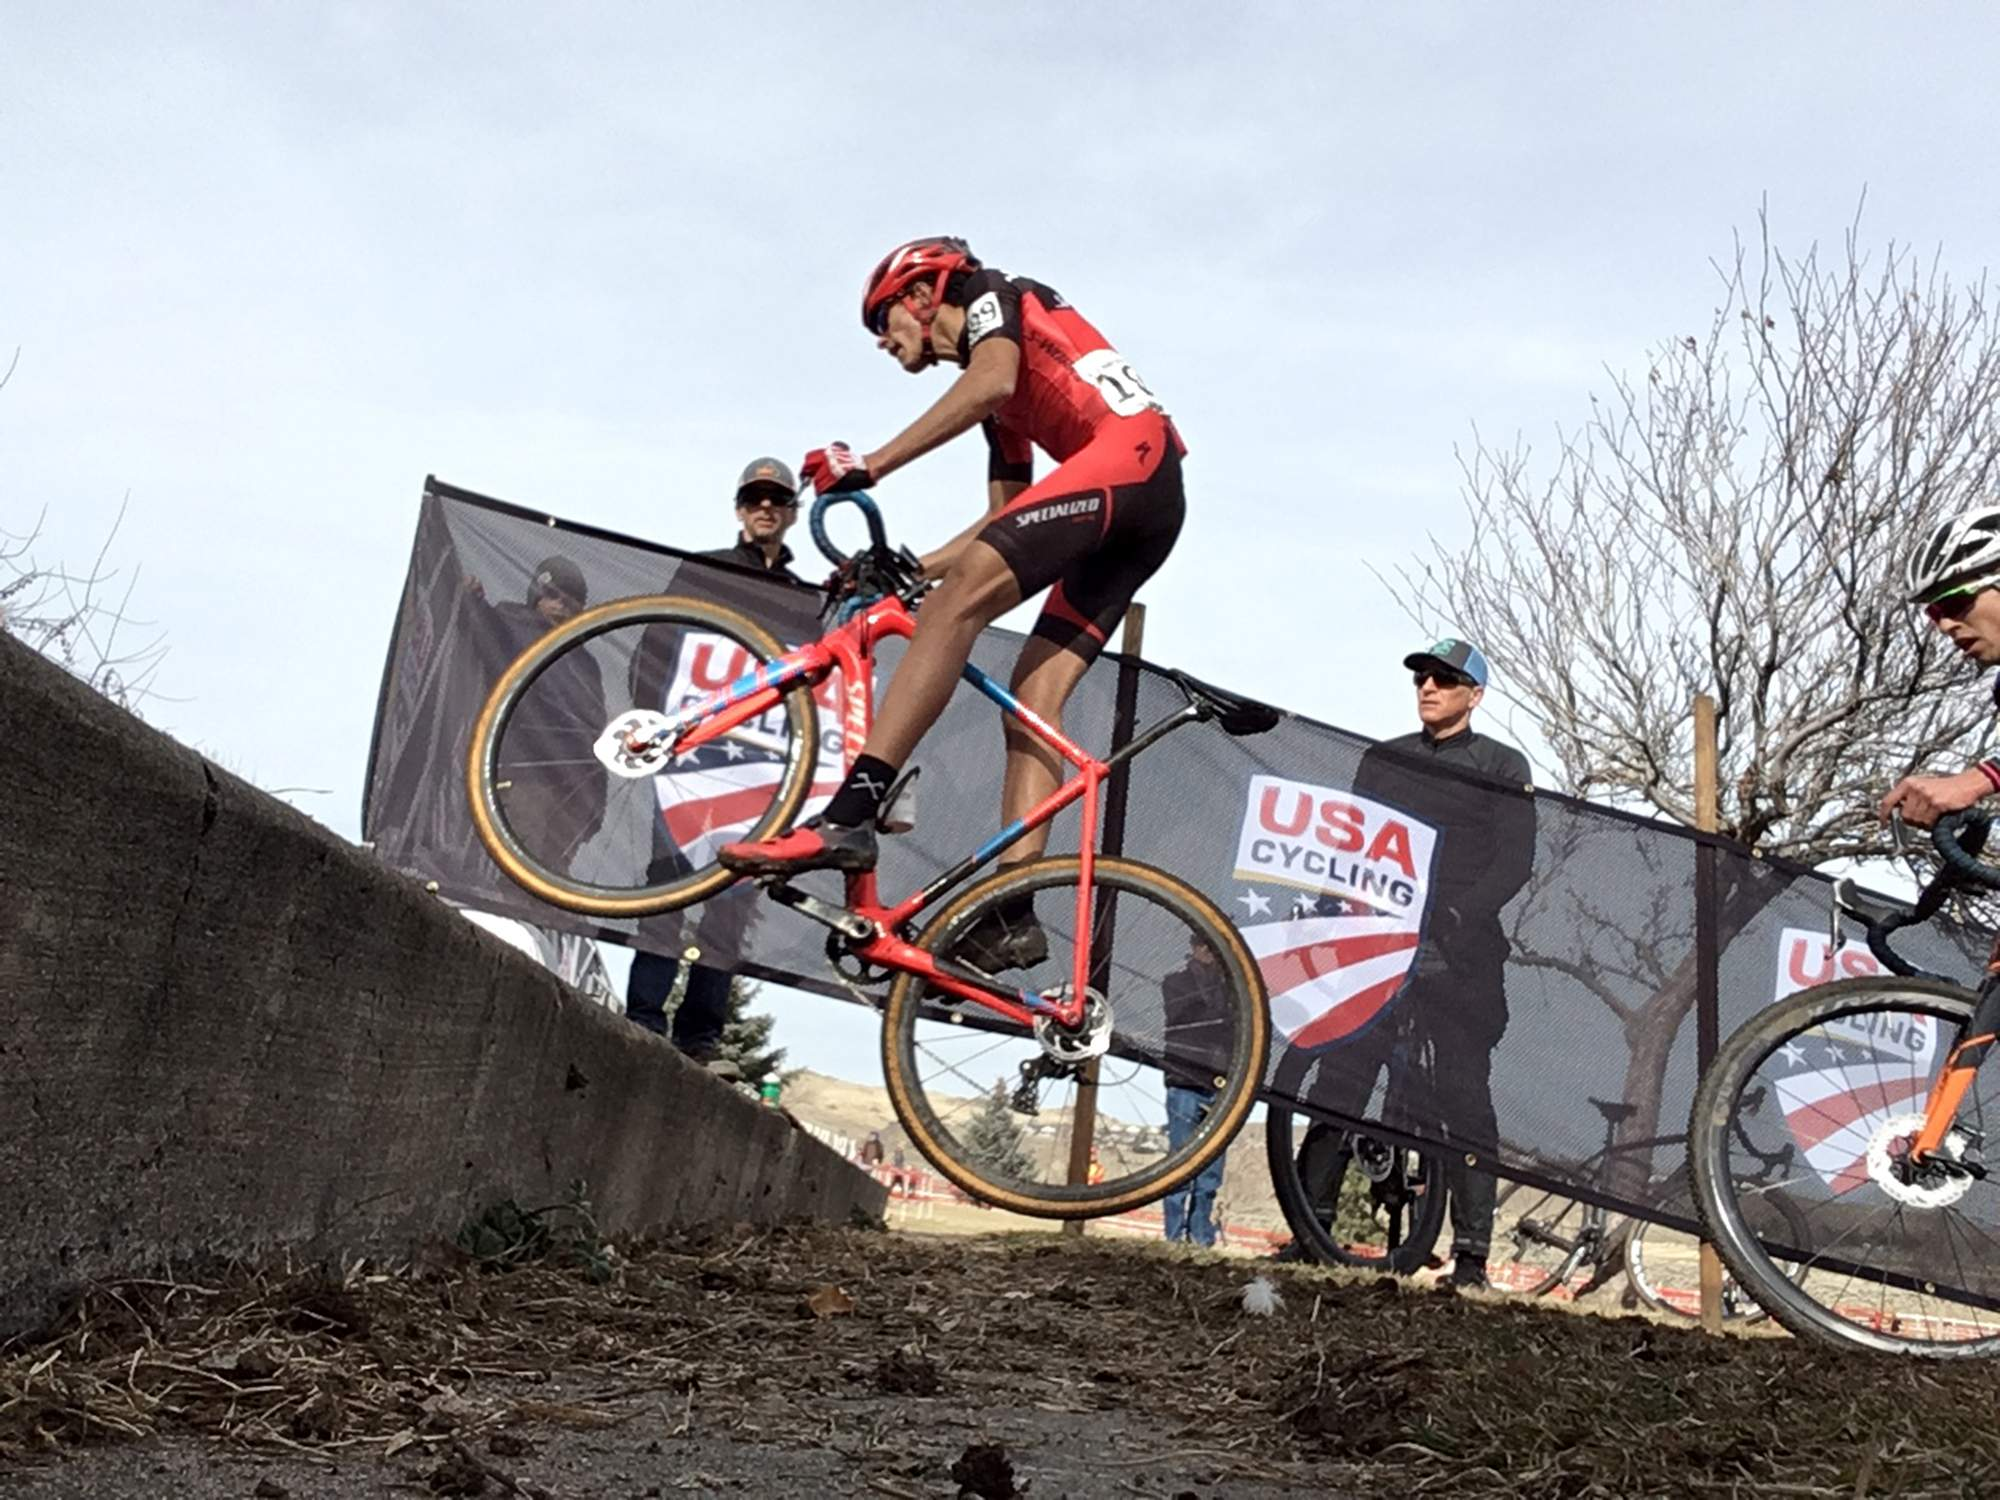 d8640ea3e97 Durango's Christopher Blevins soared to a men's under-23 cyclocross  national championship Sunday in Reno, Nevada.